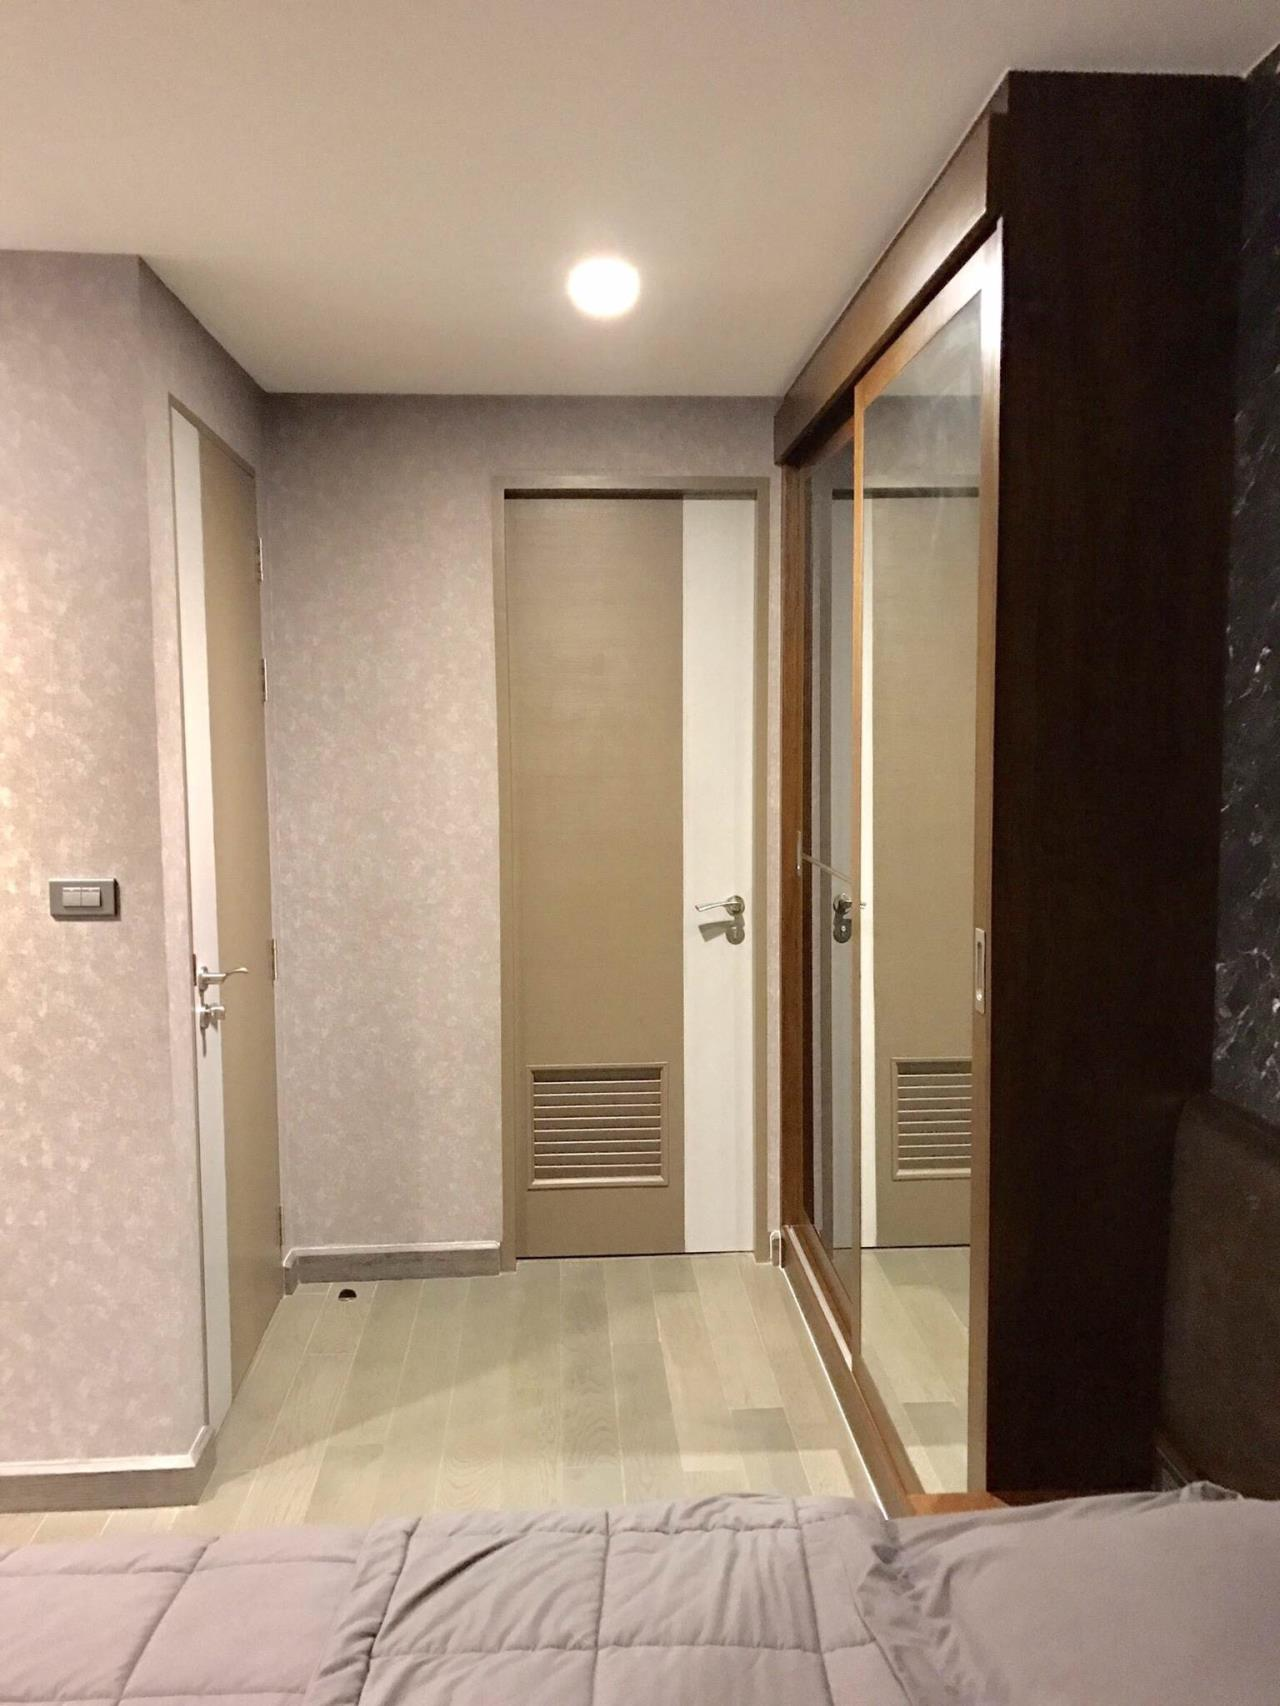 RE/MAX All Star Realty Agency's Mirage Sukhumvit one bed condo for sale/rent (BTS Asoke / MRT Sukhumvit) 13